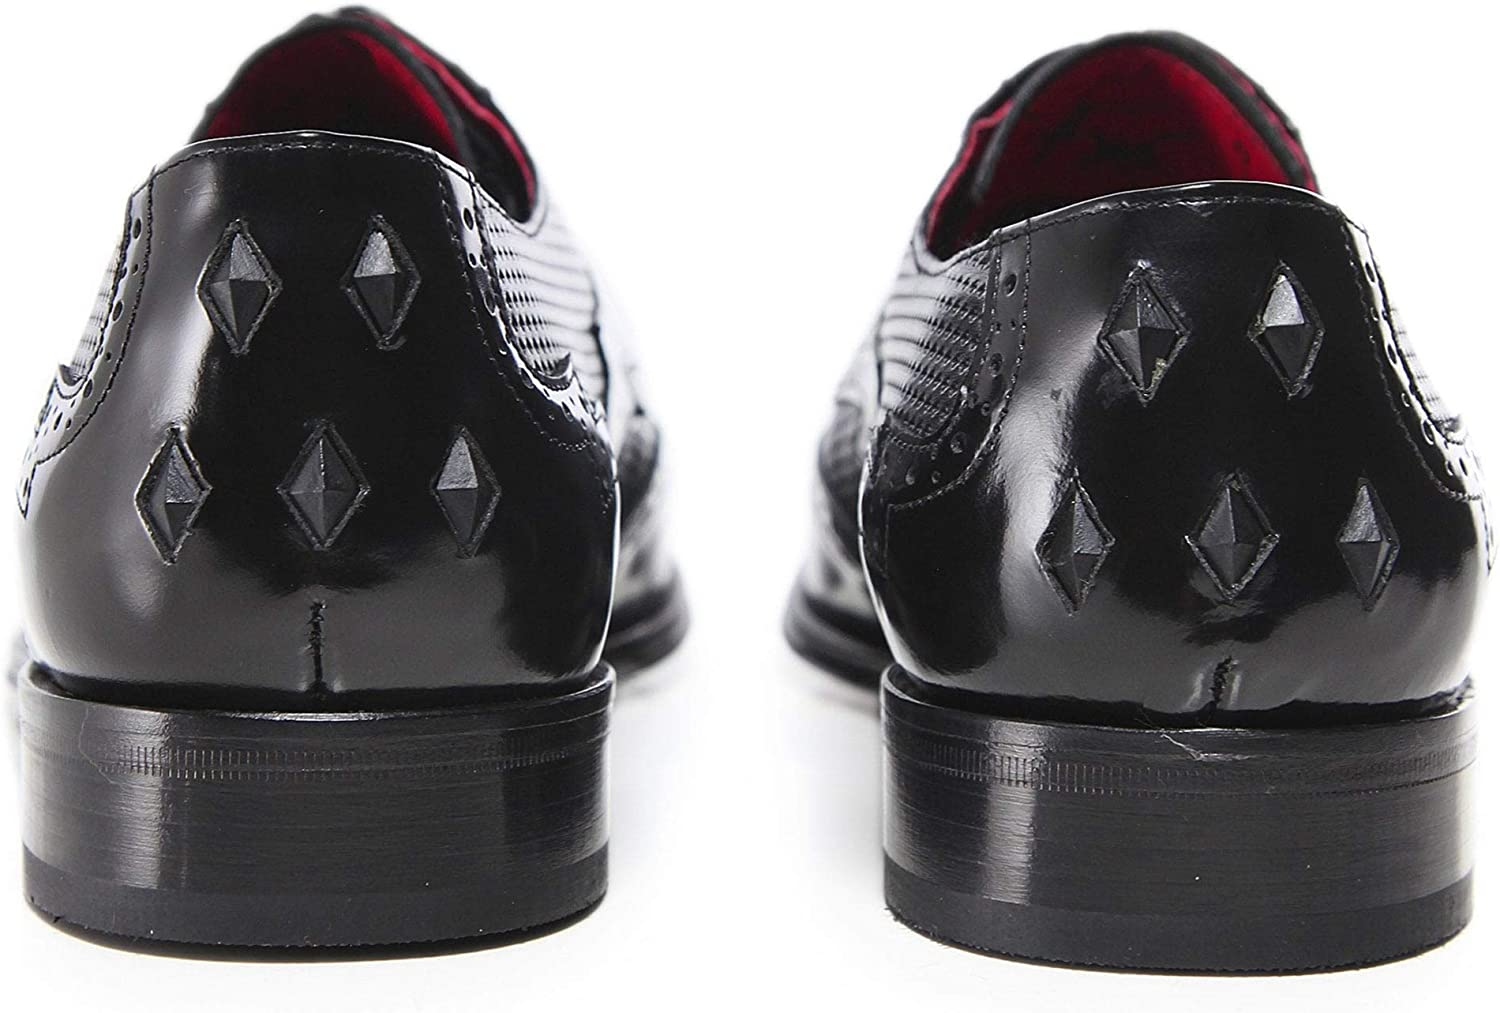 Jeffery-West Mens Perforated Leather Scarface Shoes Black